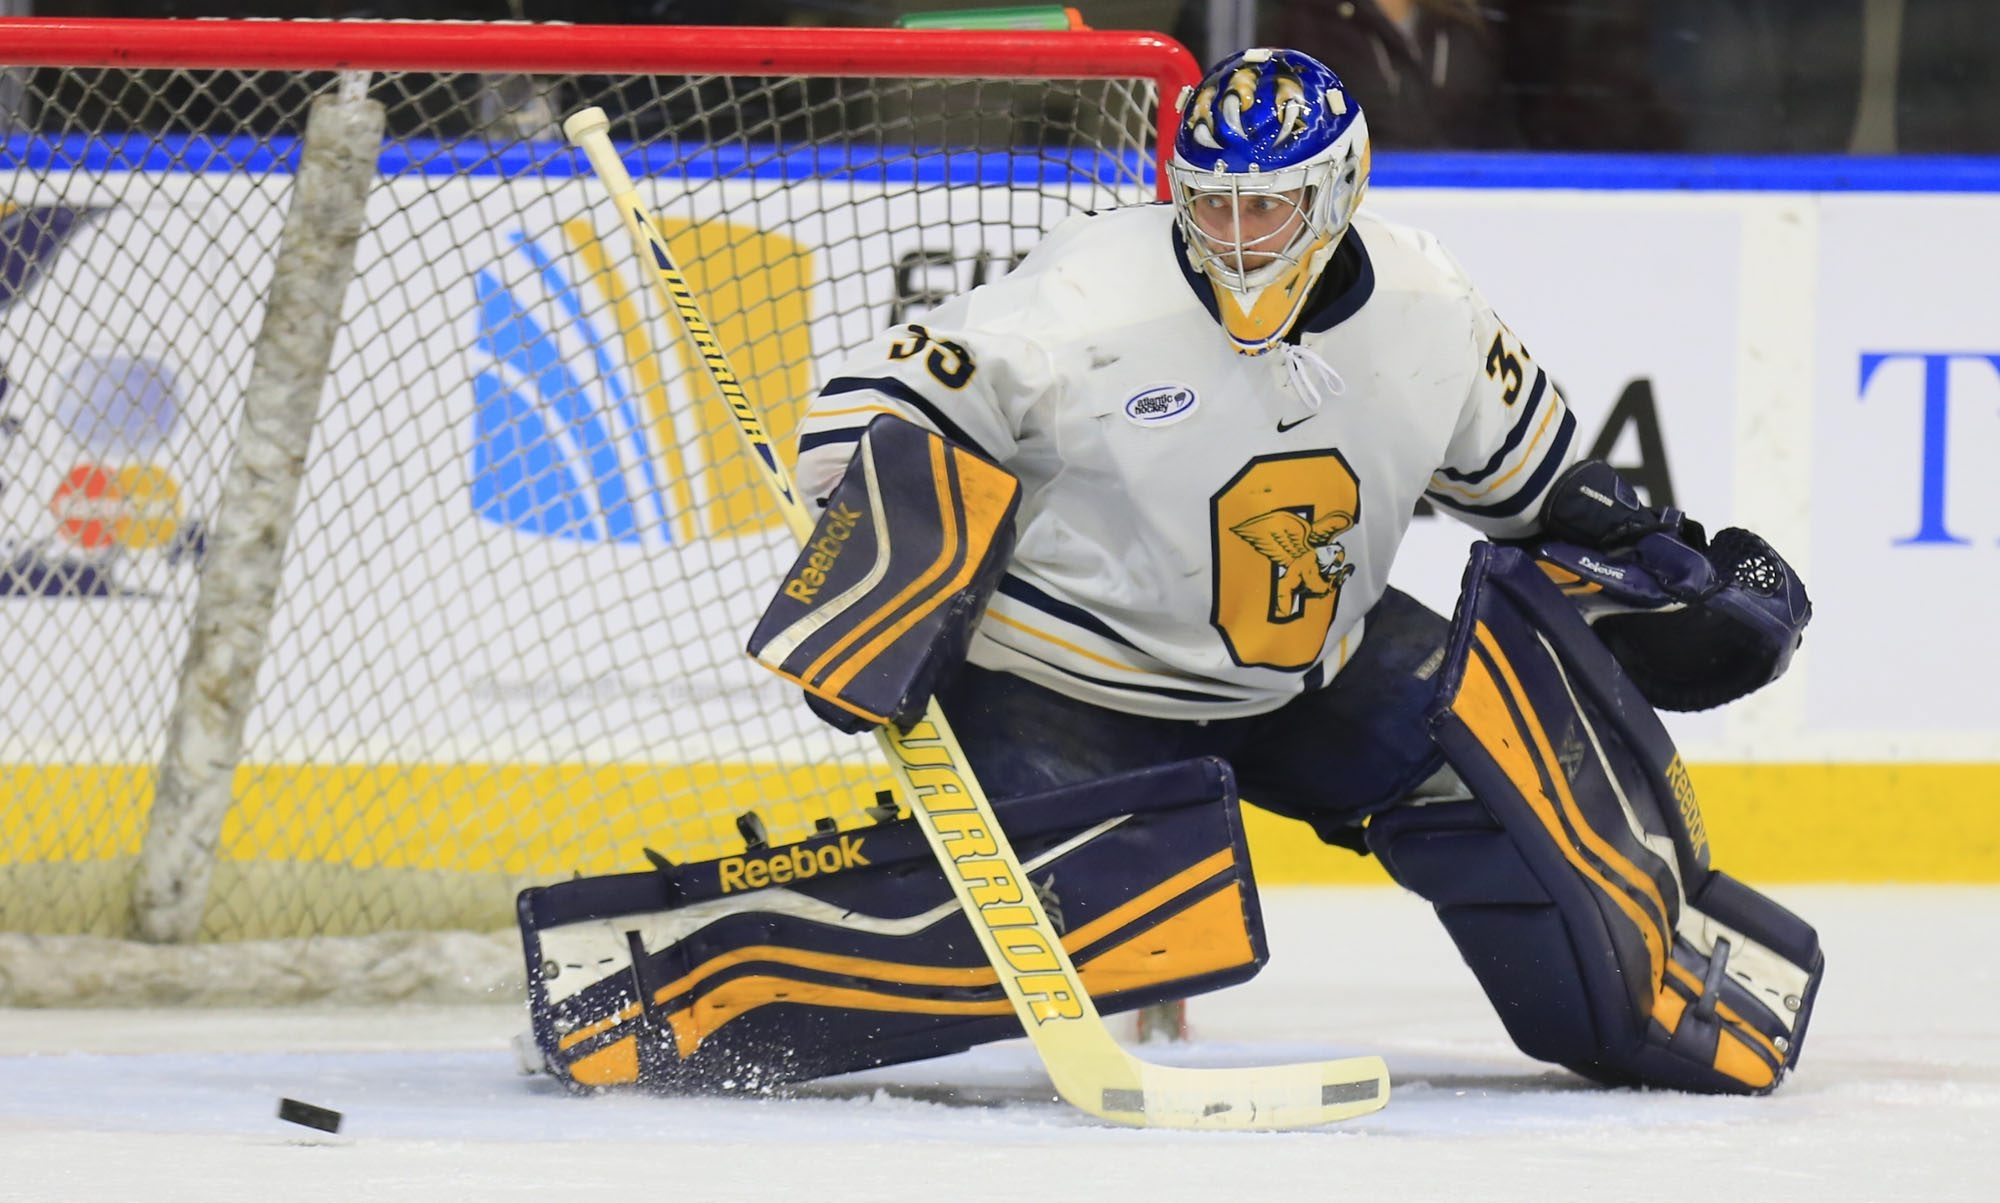 Canisius goaltender Keegan Asmundson makes a save against Sacred Heart during second period action at HarborCenter on Friday.